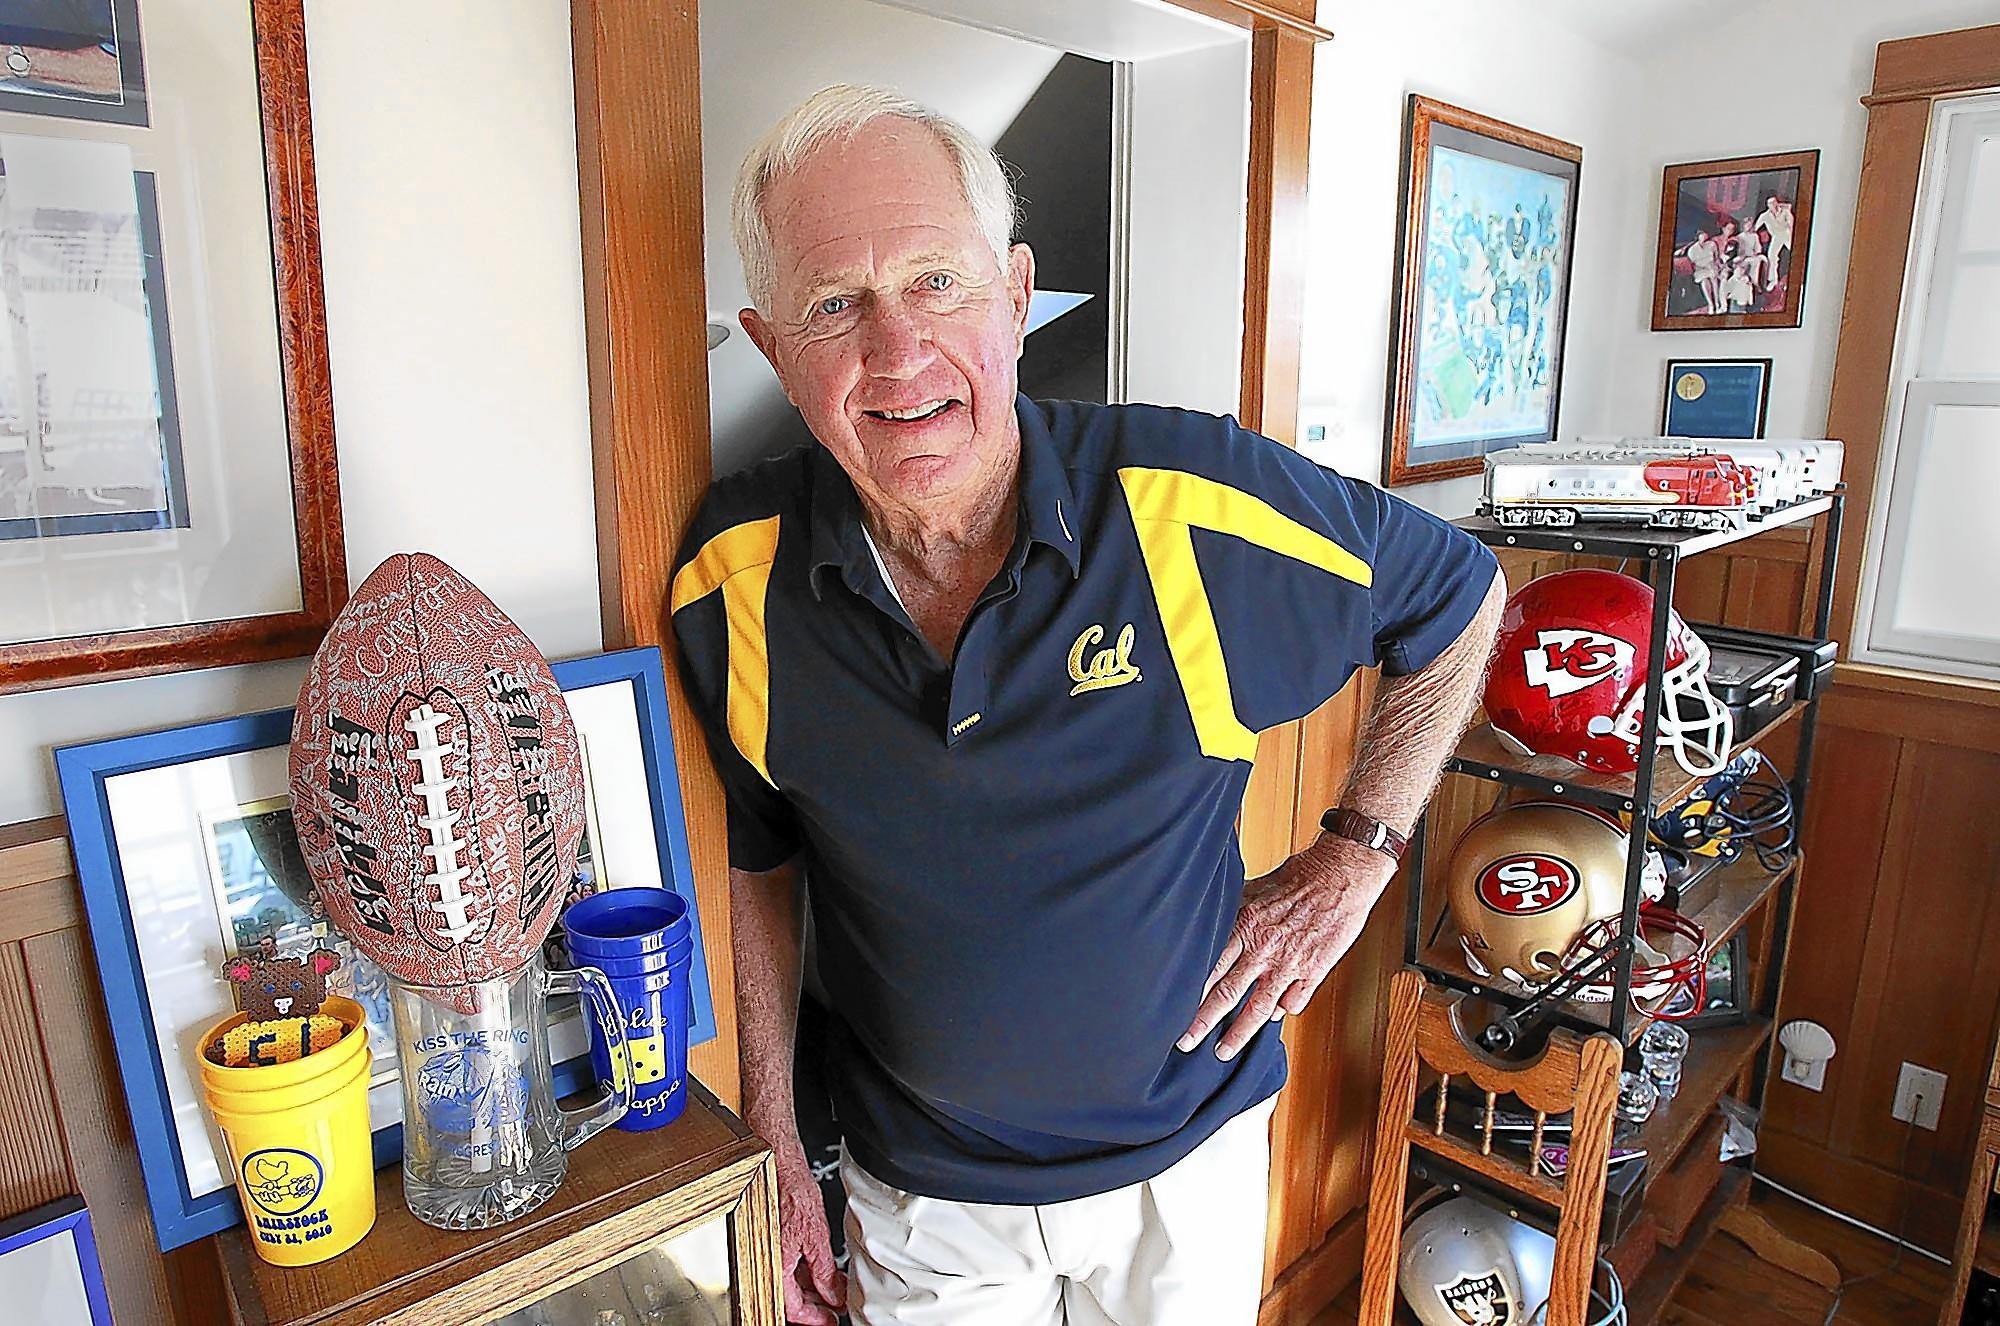 Former college and NFL coach Mike White was head coach during Cal Berkeley's Pac-8 co-championship in 1975, a team that was led by Joe Roth, who is the subject of a new documentary to be shown at the Newport Beach Film Festival.